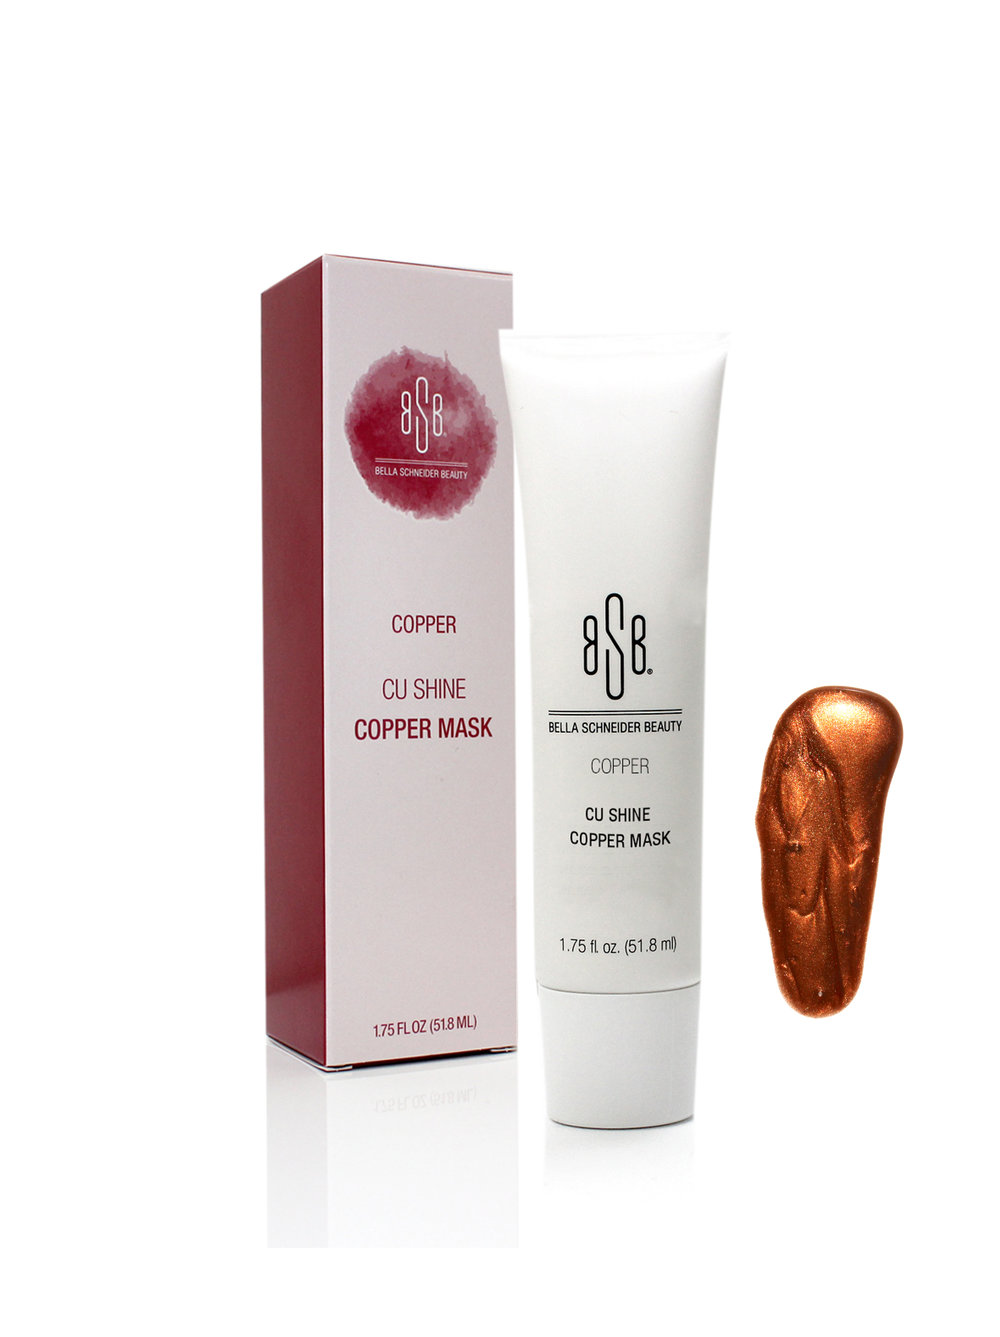 4. Bella Schneider Beauty C U Shine Copper Mask $46.00 from www.labelledayspas.com